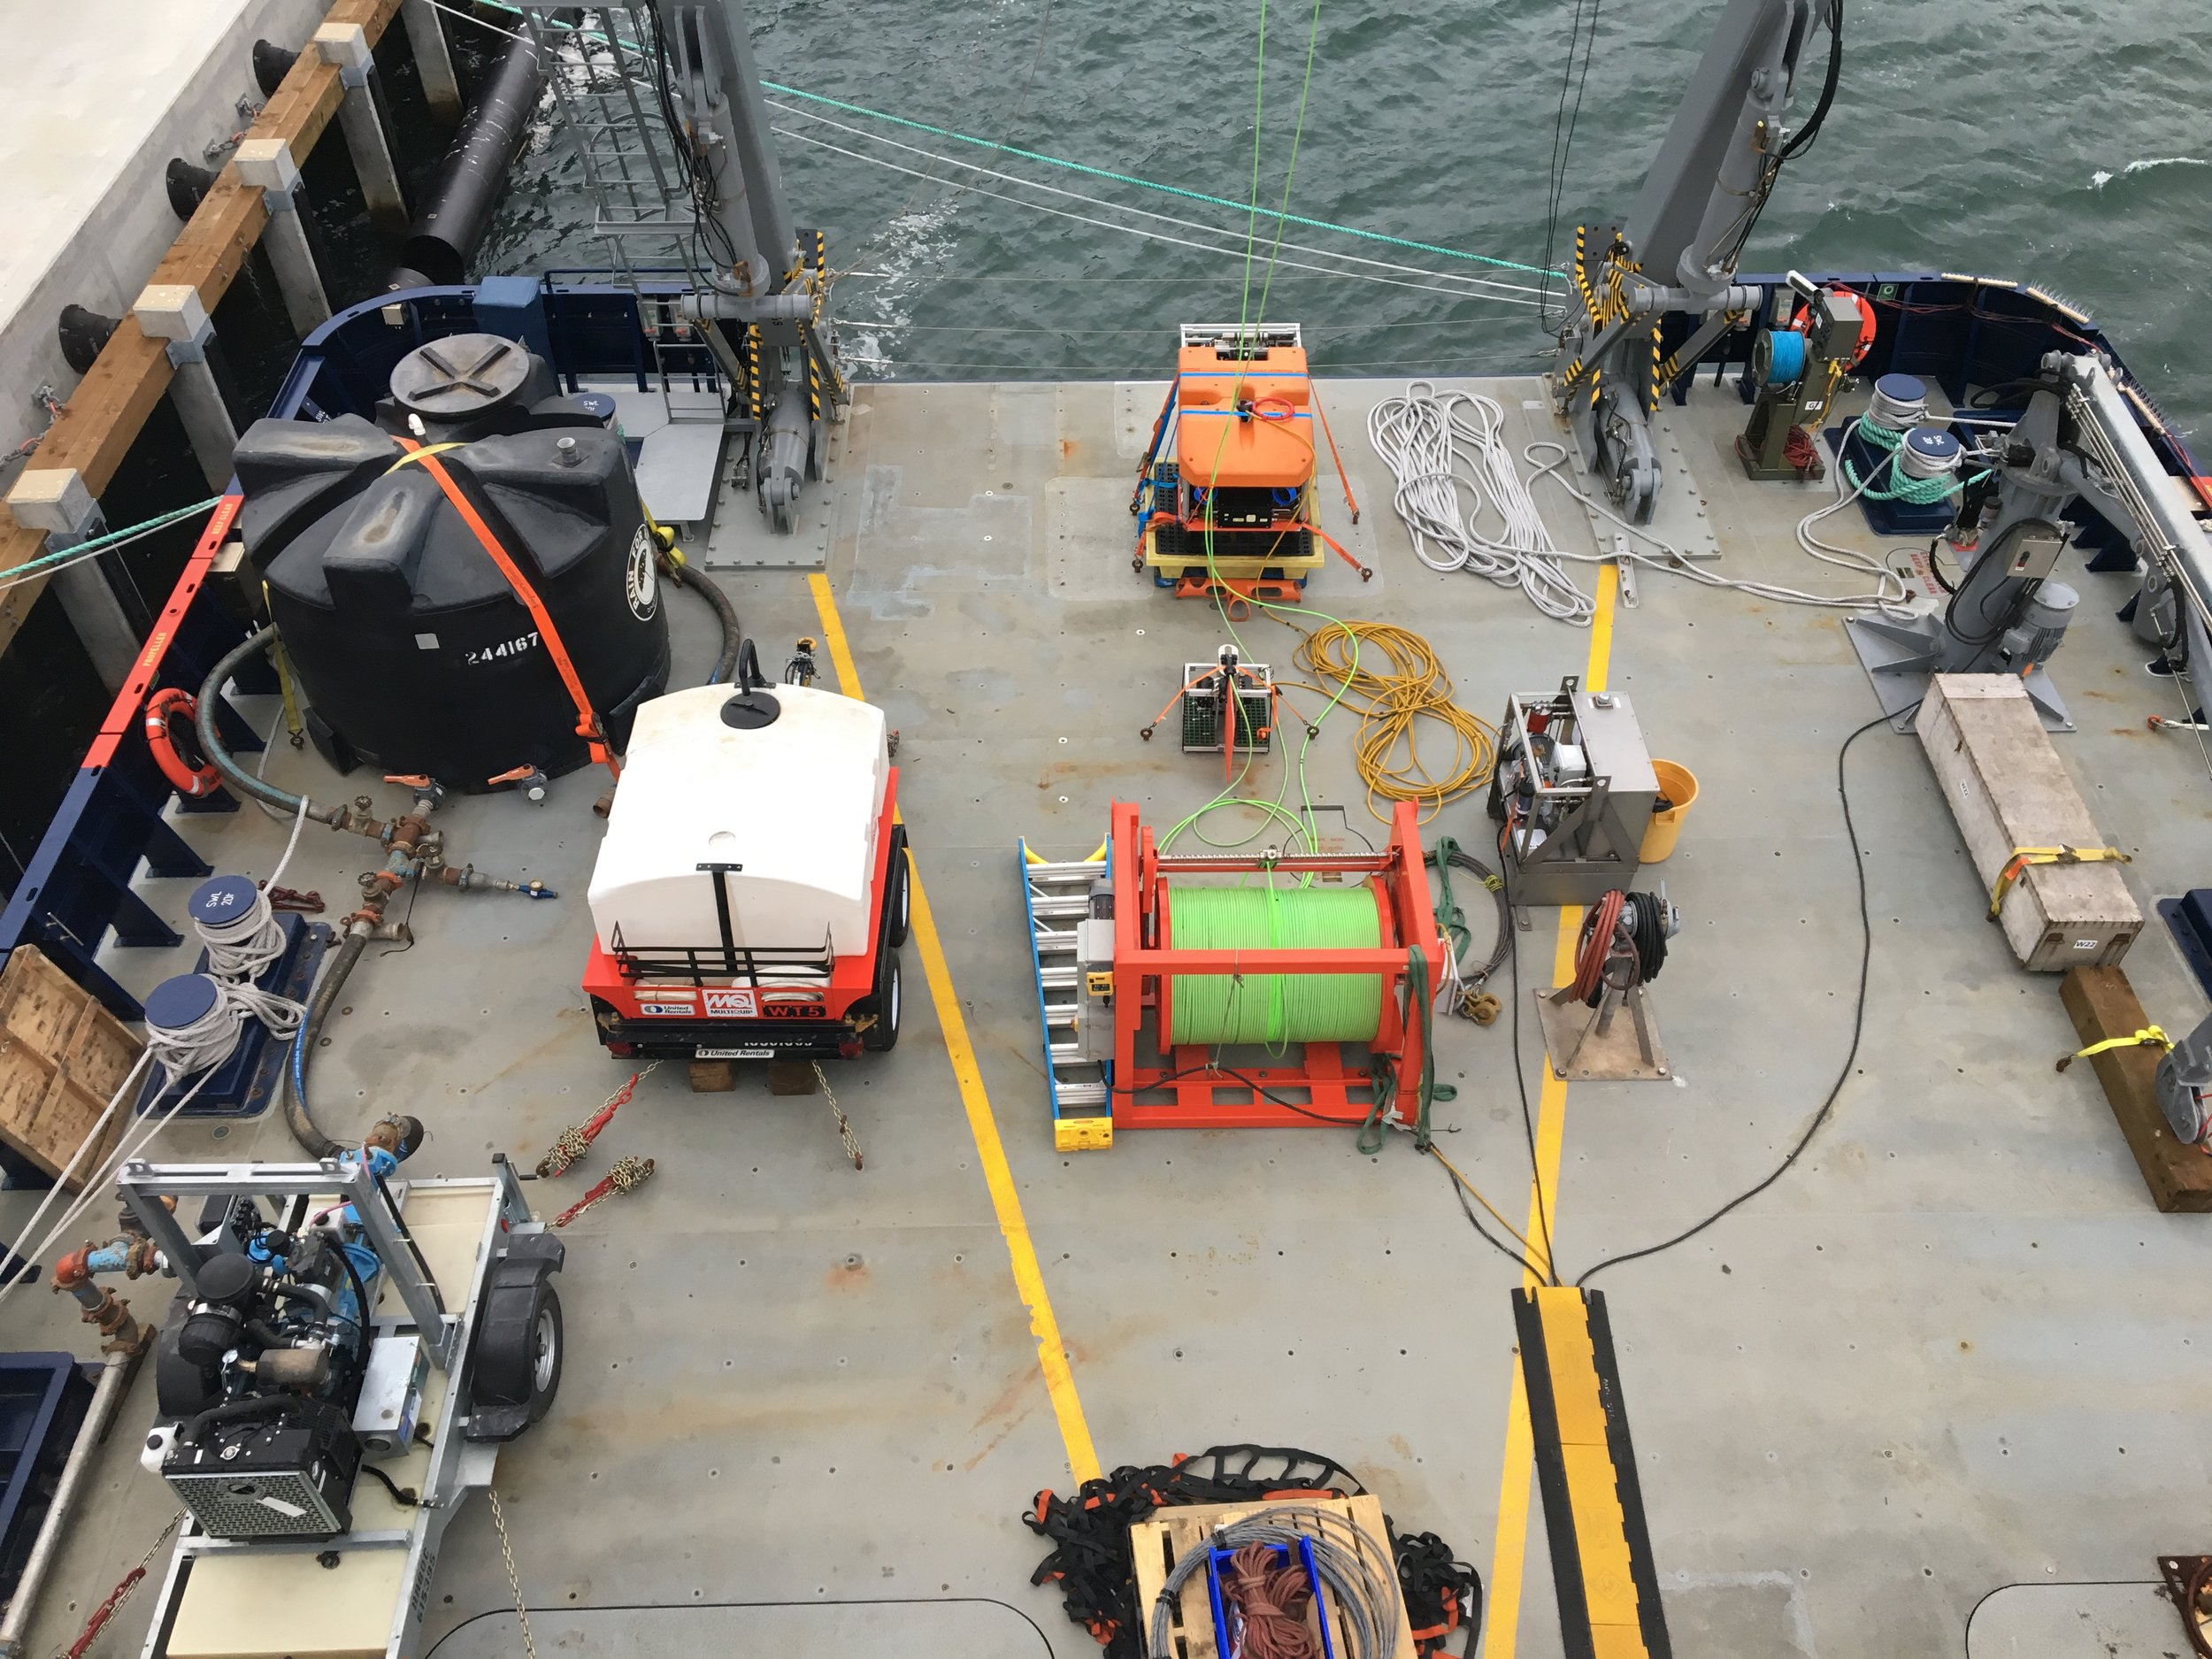 The remotely operated underwater vehicle (ROV) SIO Trident and associated equipment sits on the back deck of the R/V Sally Ride, ready for PLUMEX-related operations.